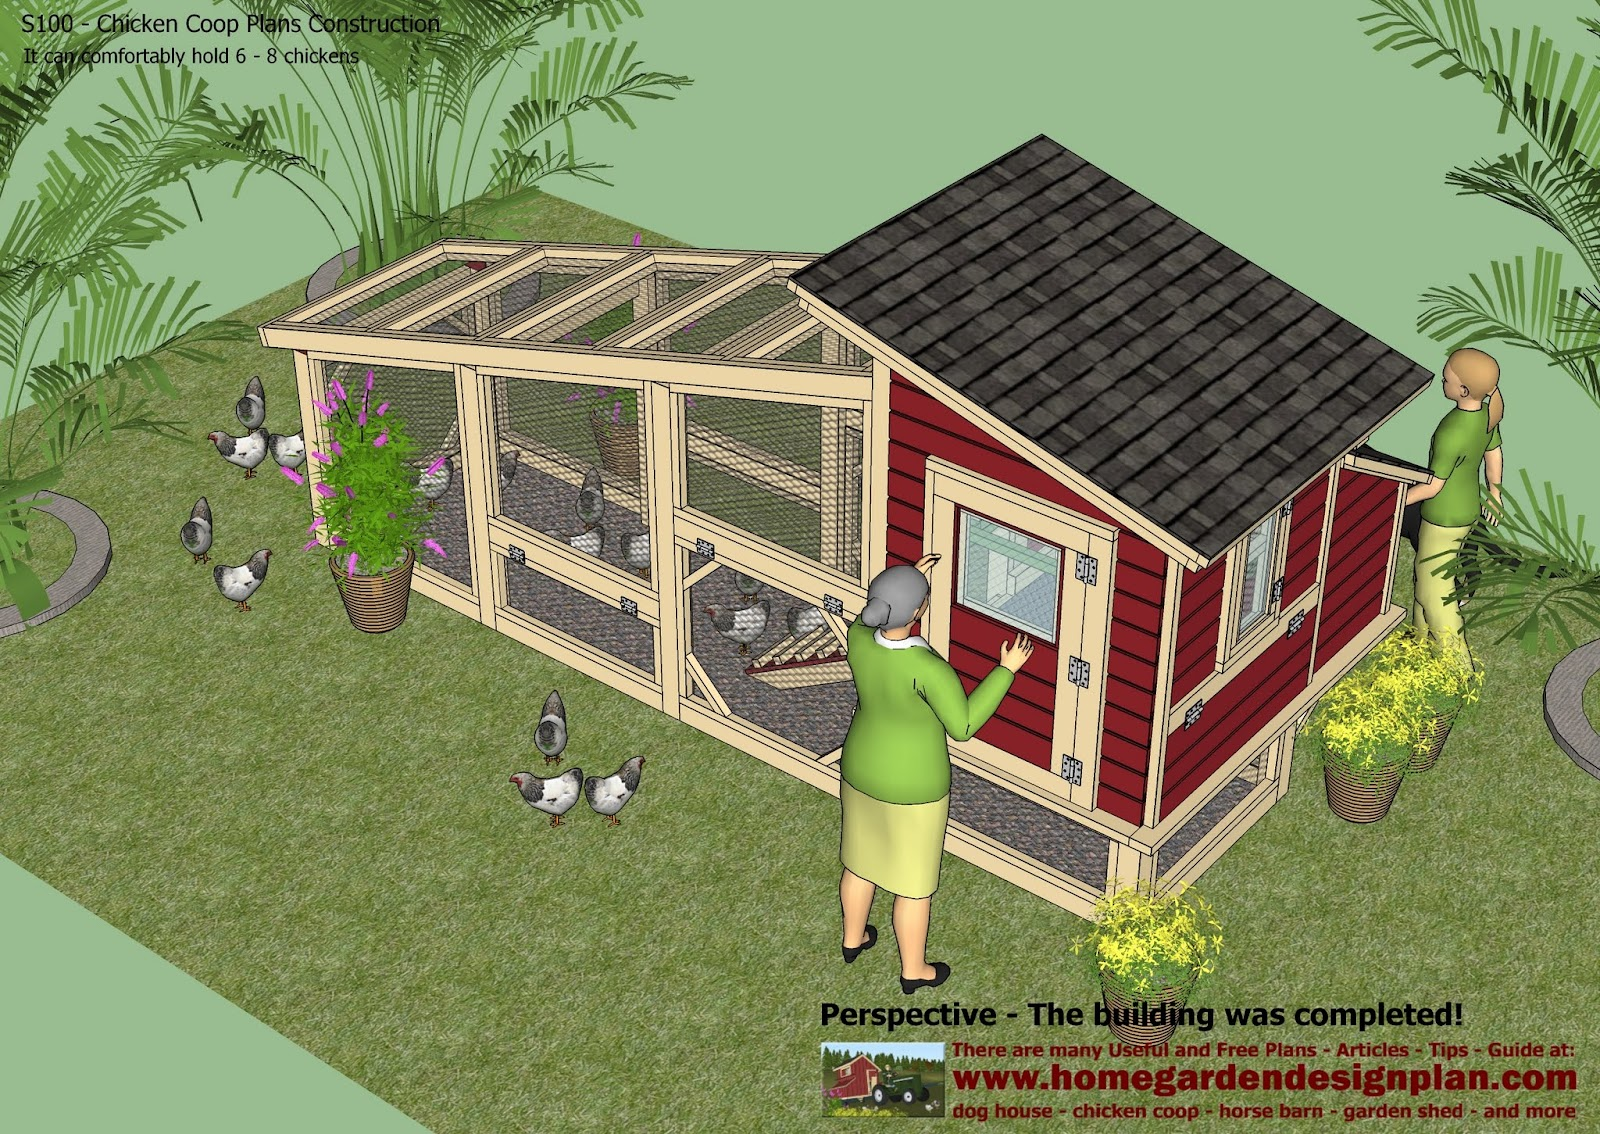 Chicken Coop Design - How To Build A Chicken Coop